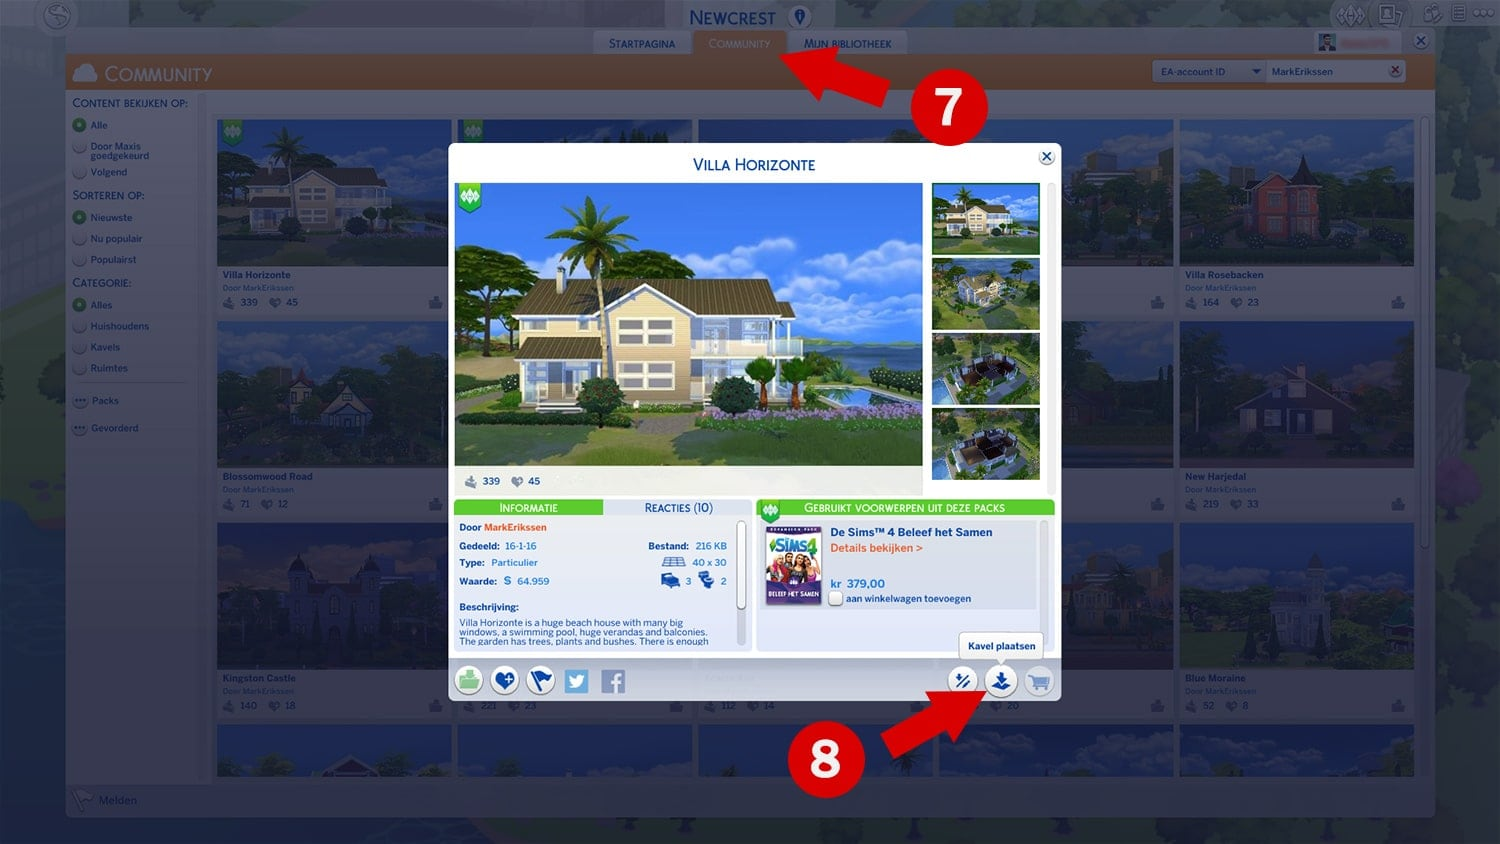 Downloaden en installeren van huizen via de Sims 4 Galerie